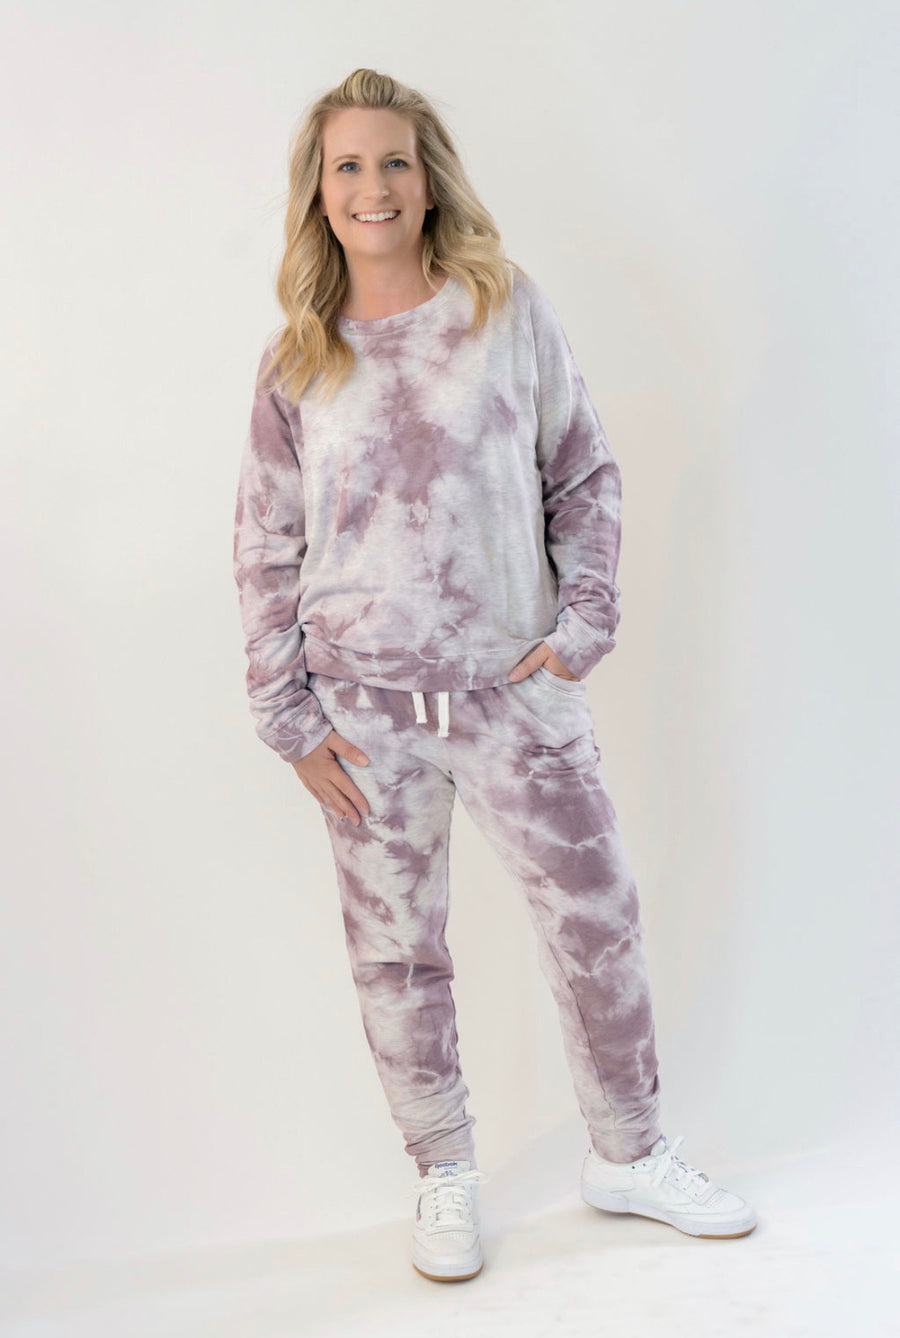 Alana Tie Dye Lavender Joggers - SoCal Threads Boutique